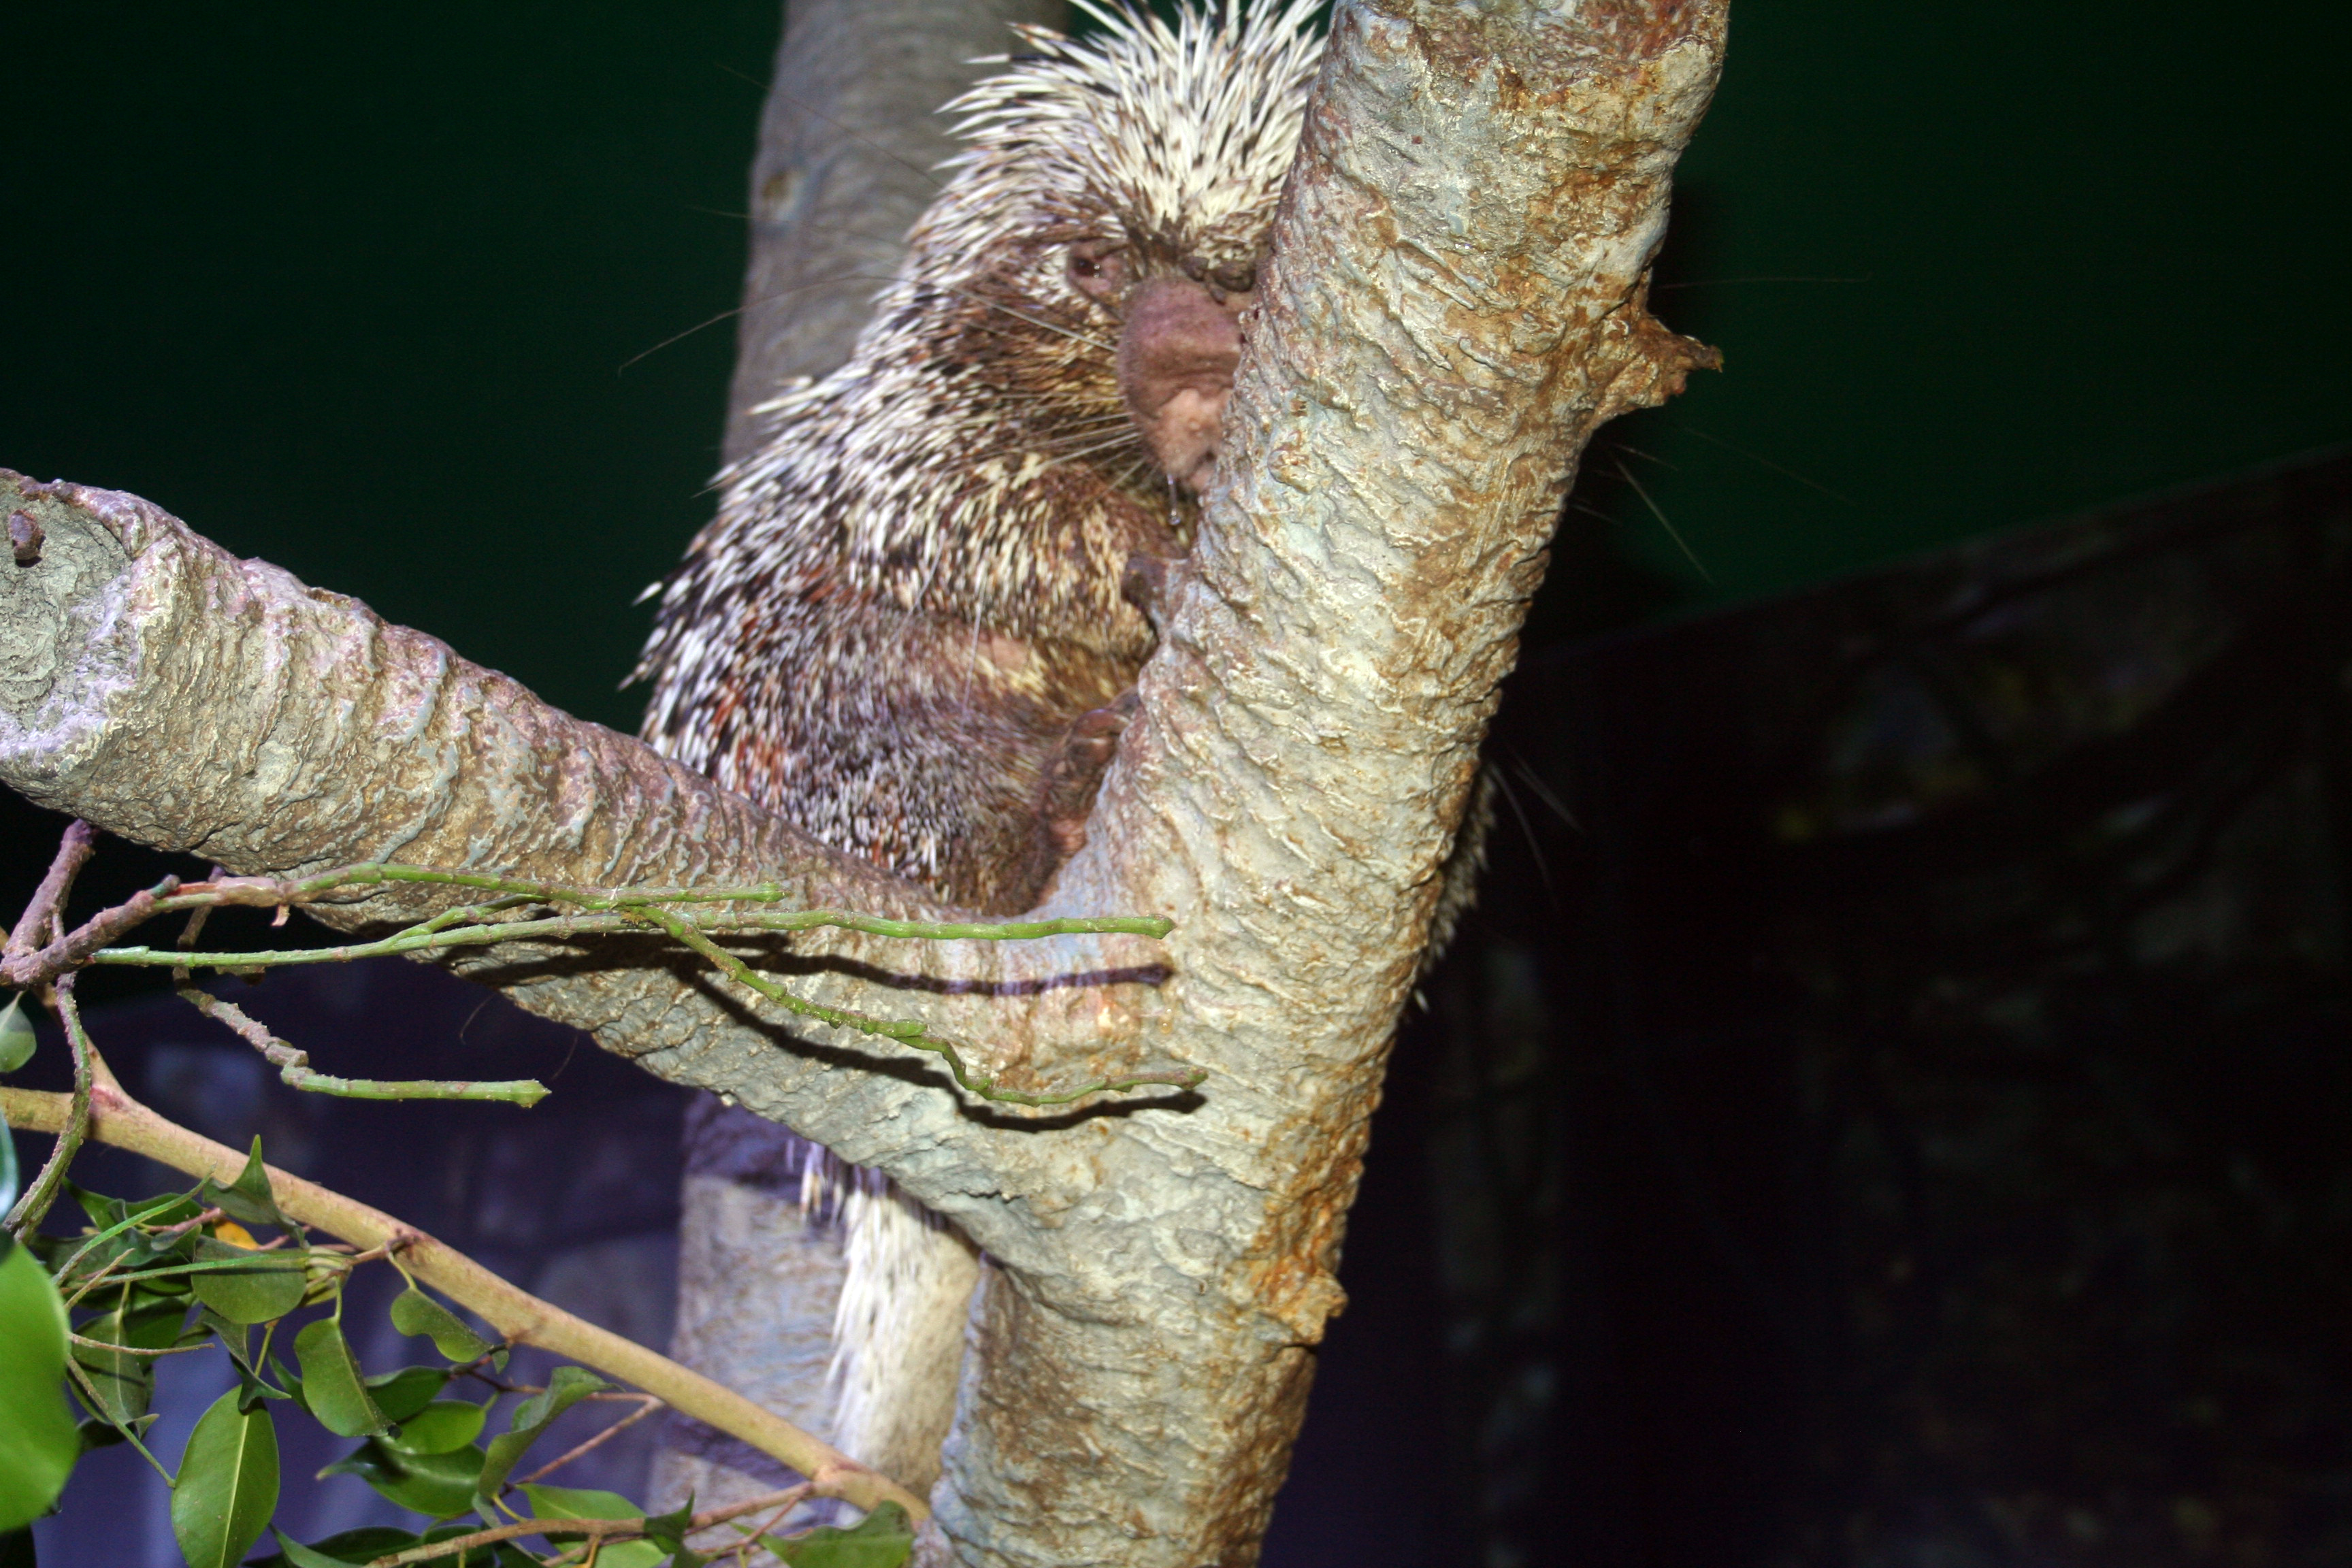 Porcupine Baby Born at Moody Gardens